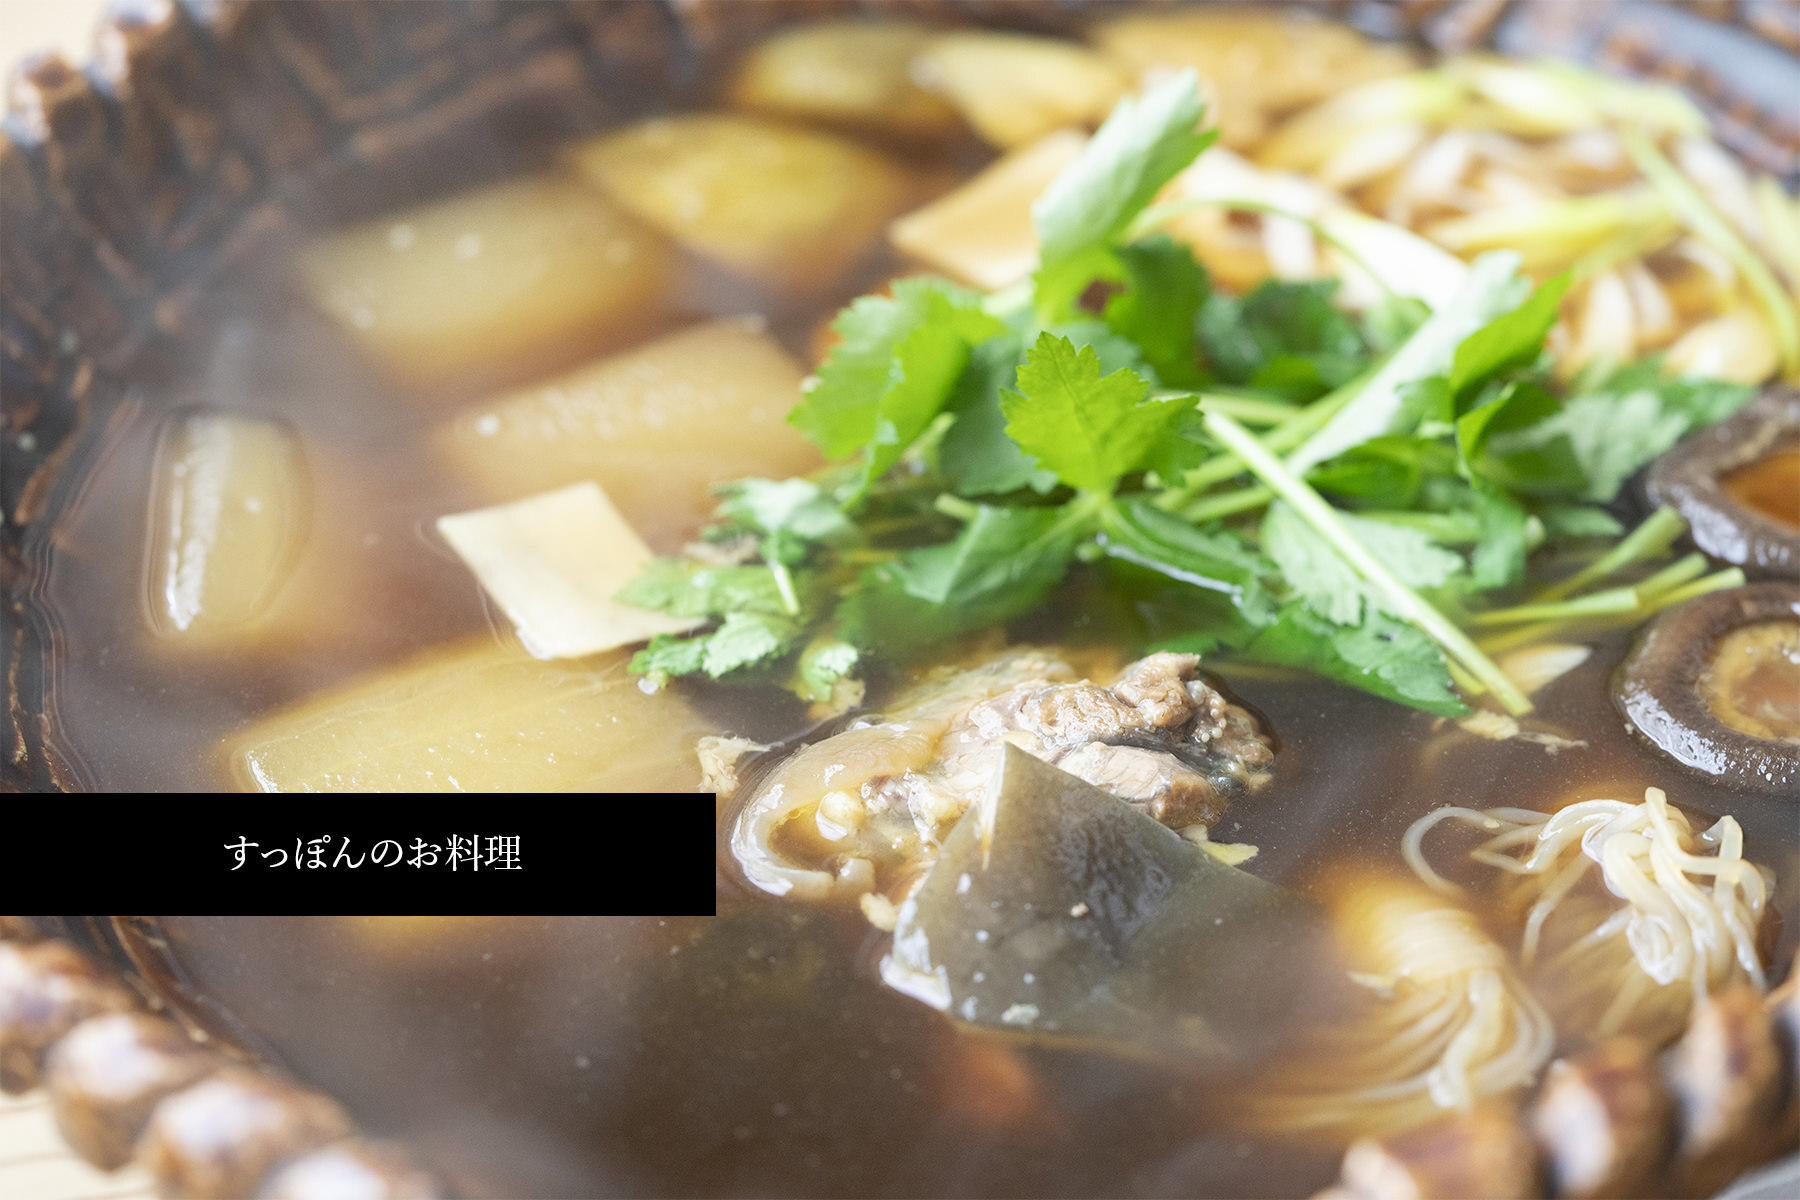 Delicious food of the season's images1